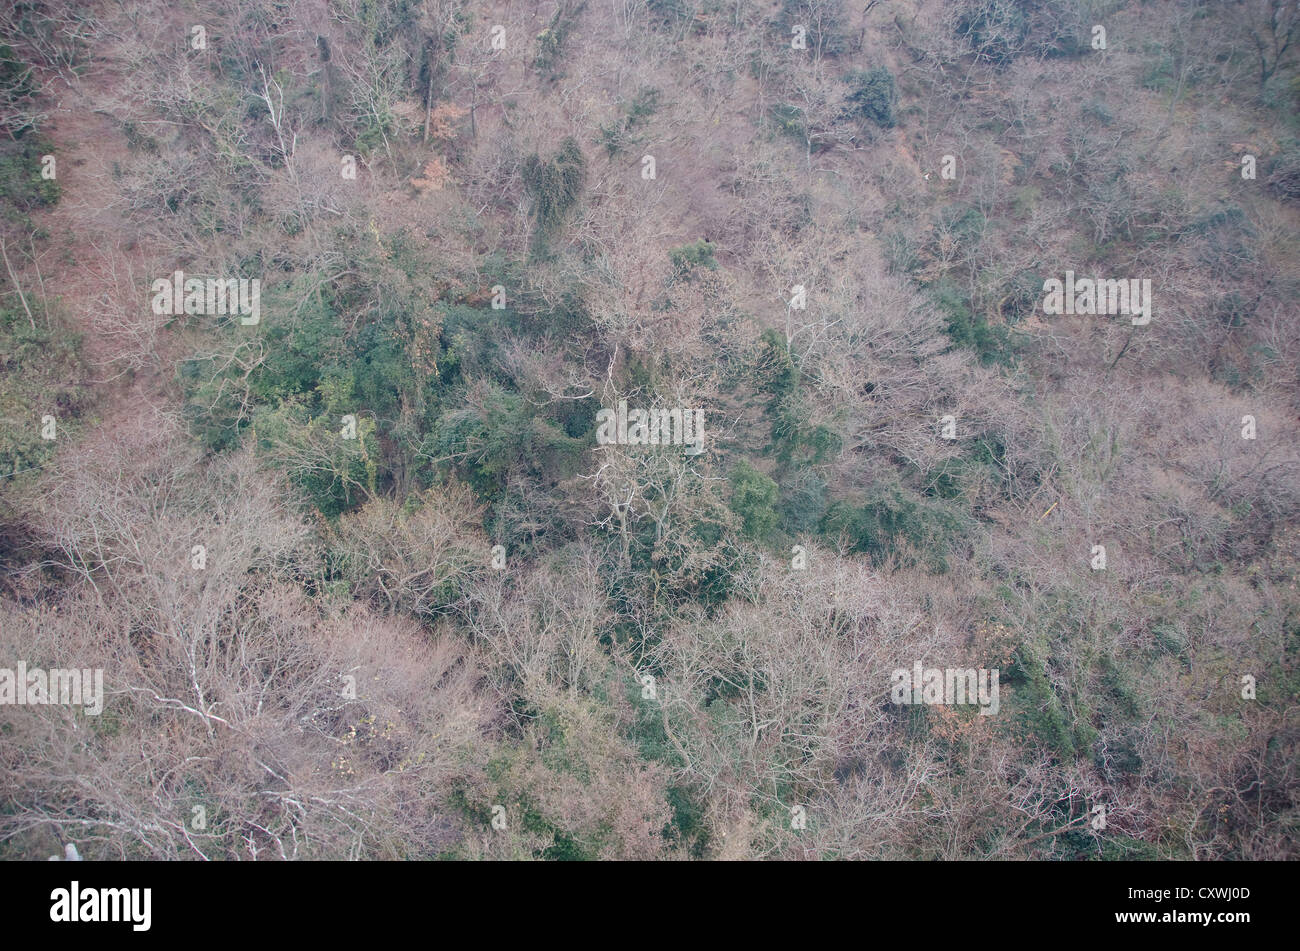 Japanese forest in winter seen from above with green and empty trees - Stock Image